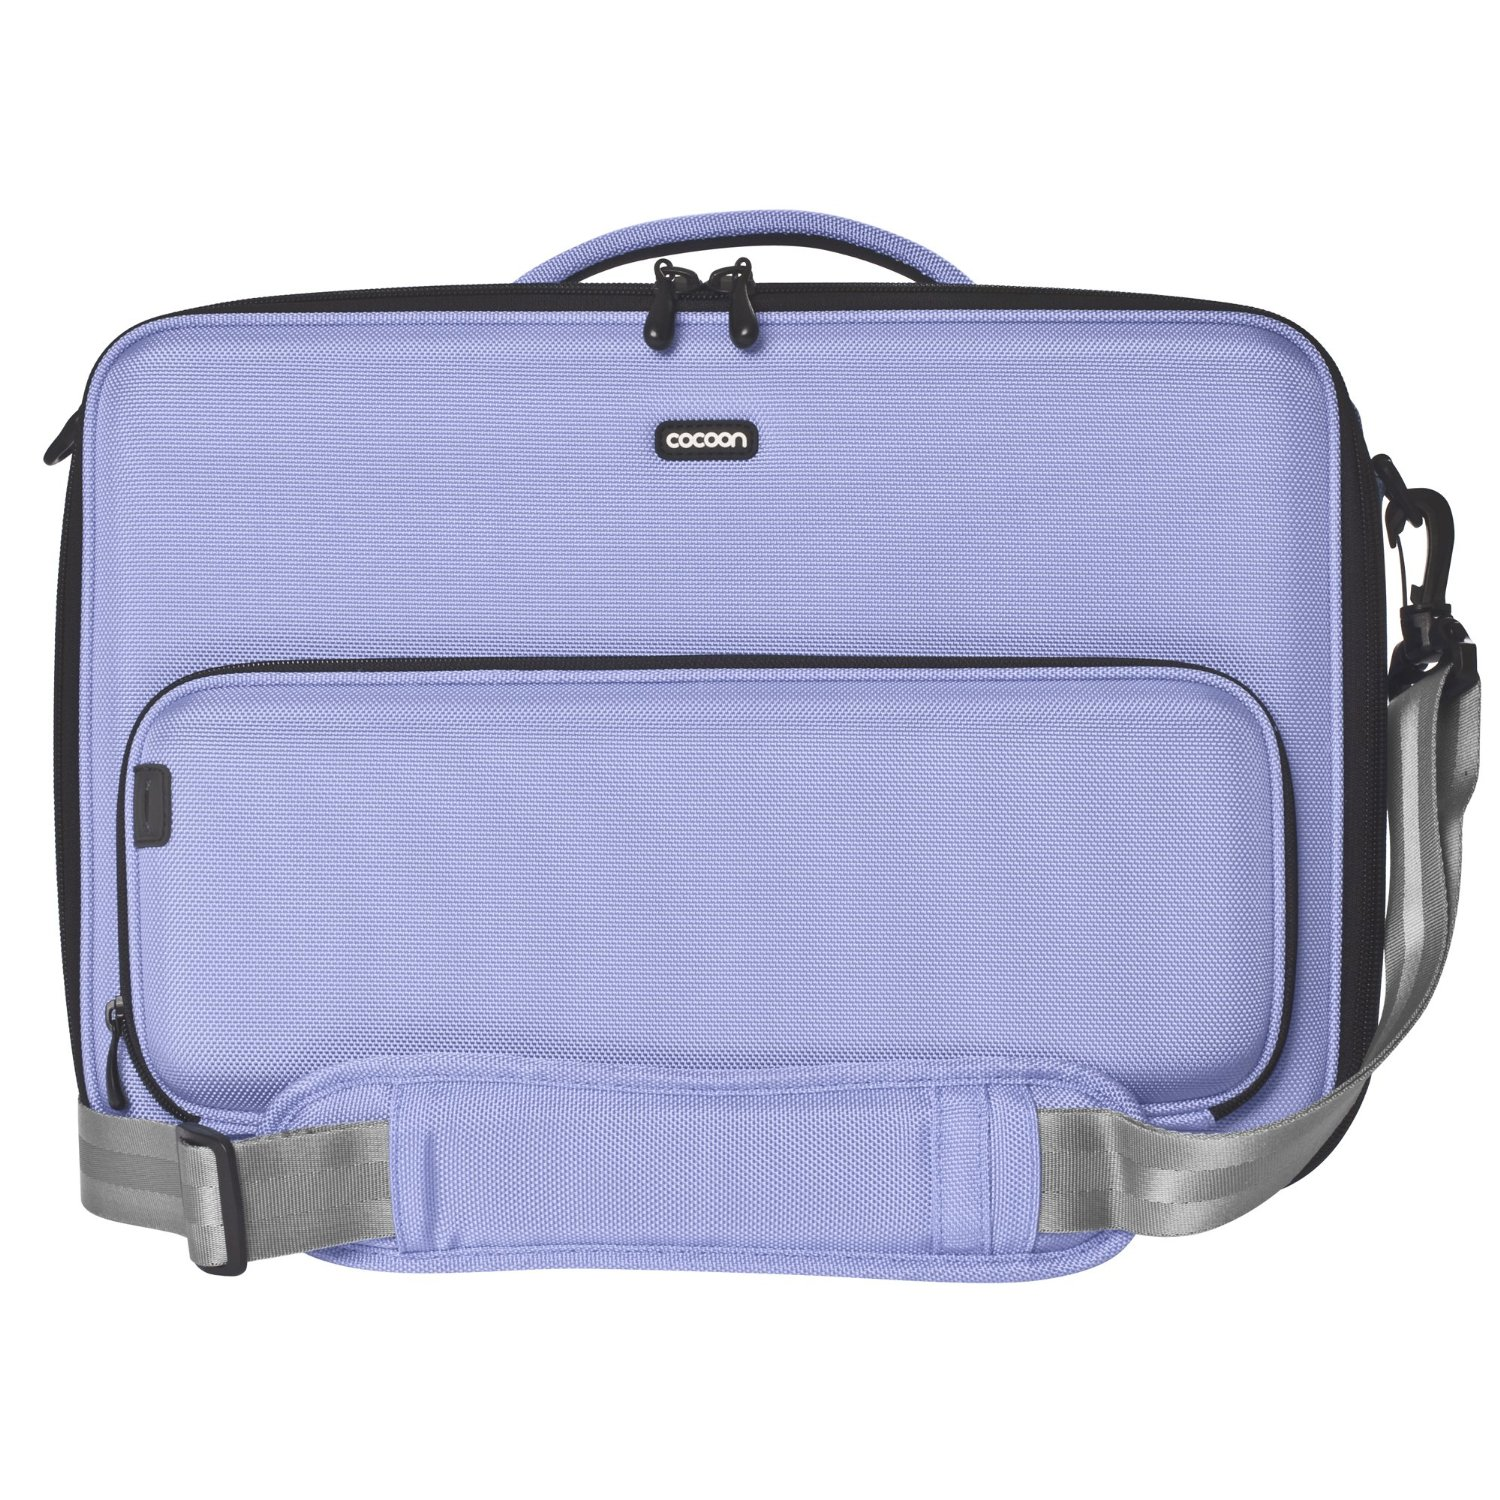 Cocoon CLB405 EVA Shock-Absorbent Laptop Notebook Sleeve Carry Case Bag